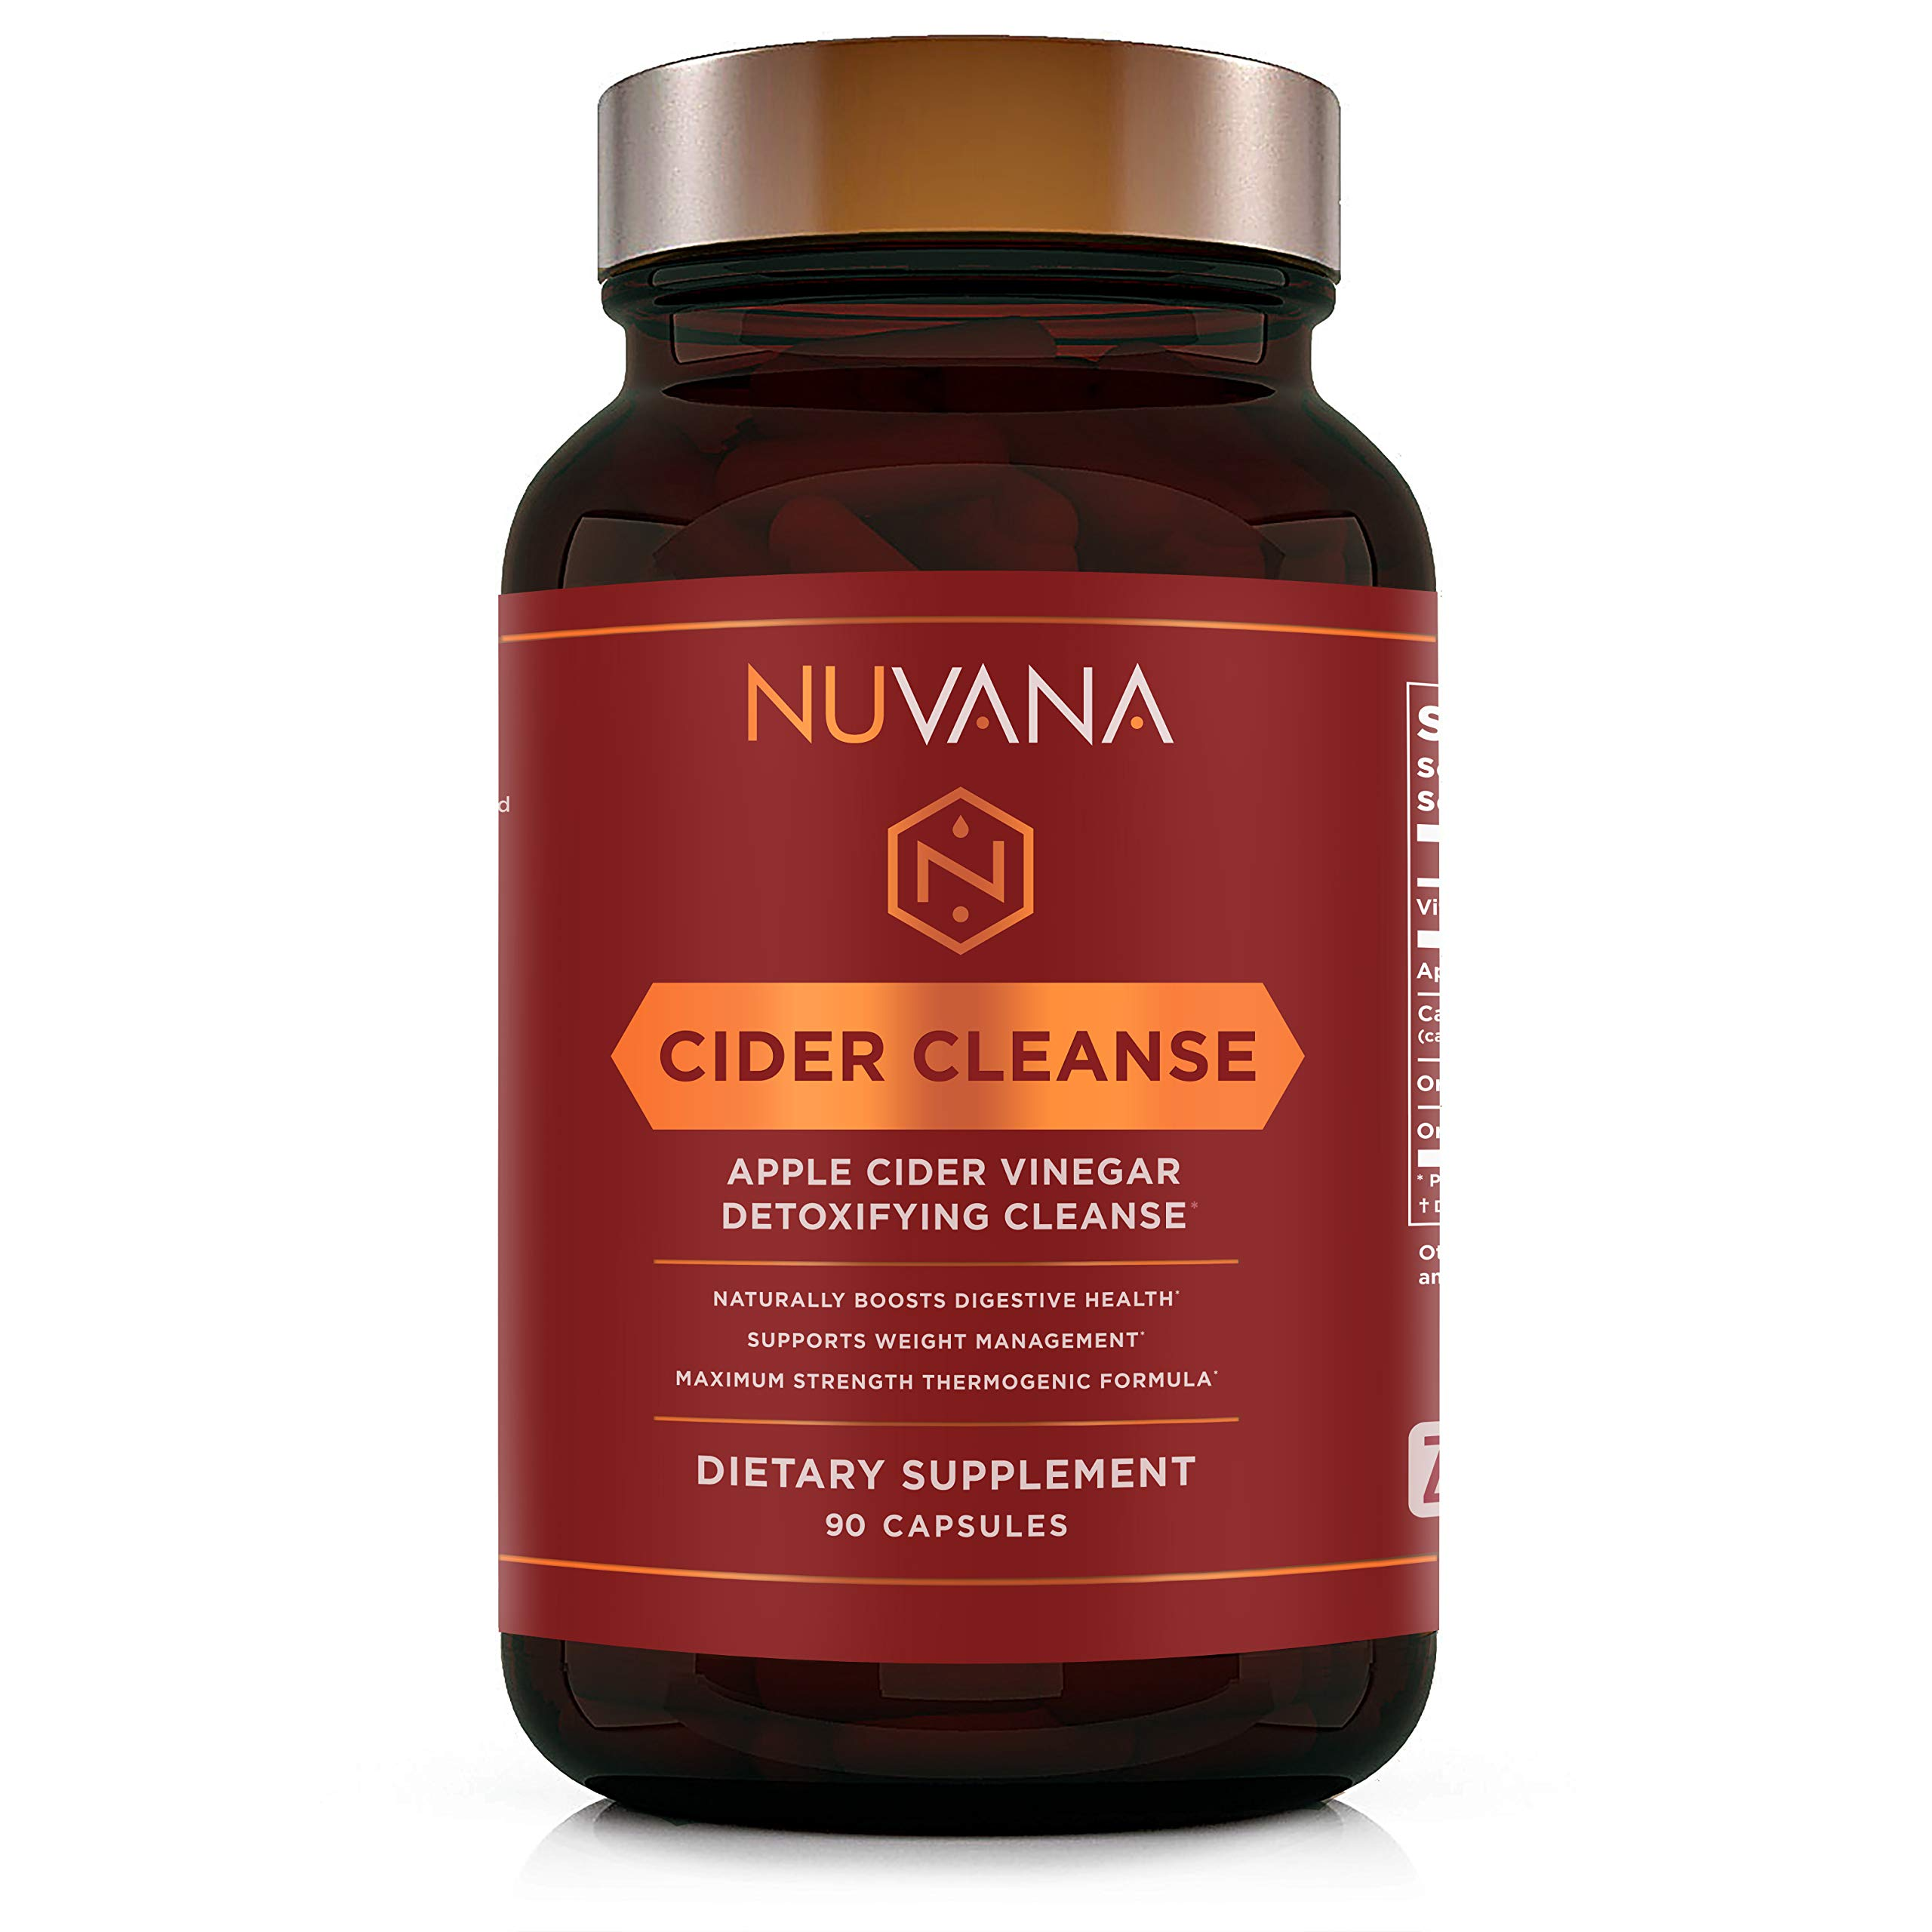 Cider Cleanse | Apple Cider Vinegar with Organic Ginger, Cinnamon, Cayenne Pepper and Vitamin C | Max Strength Thermogenic Fat Burner Pills for Improved Digestion and Detox | 90 Vegan Capsules by Nuvana